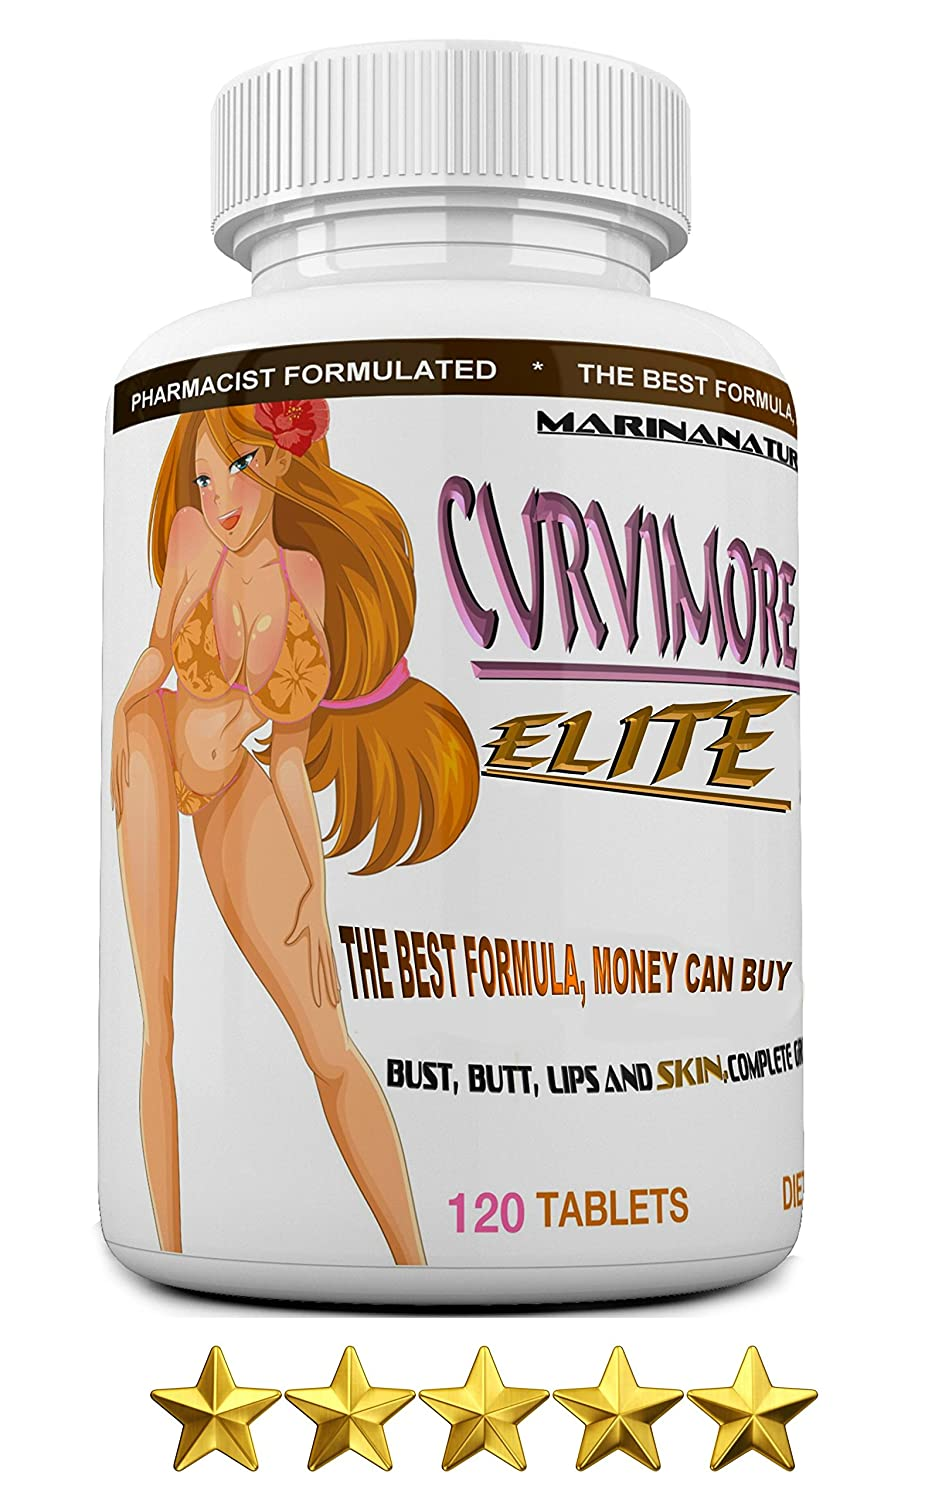 CURVIMORE Elite ? Our Most Advanced Natural Breast Enlargement, Butt Enhancement, Bust Enhancement Lip Plumping & Skin Tightening Pills – Fuller Breasts, Booty & Brazilian Butts. 120-Tablets.